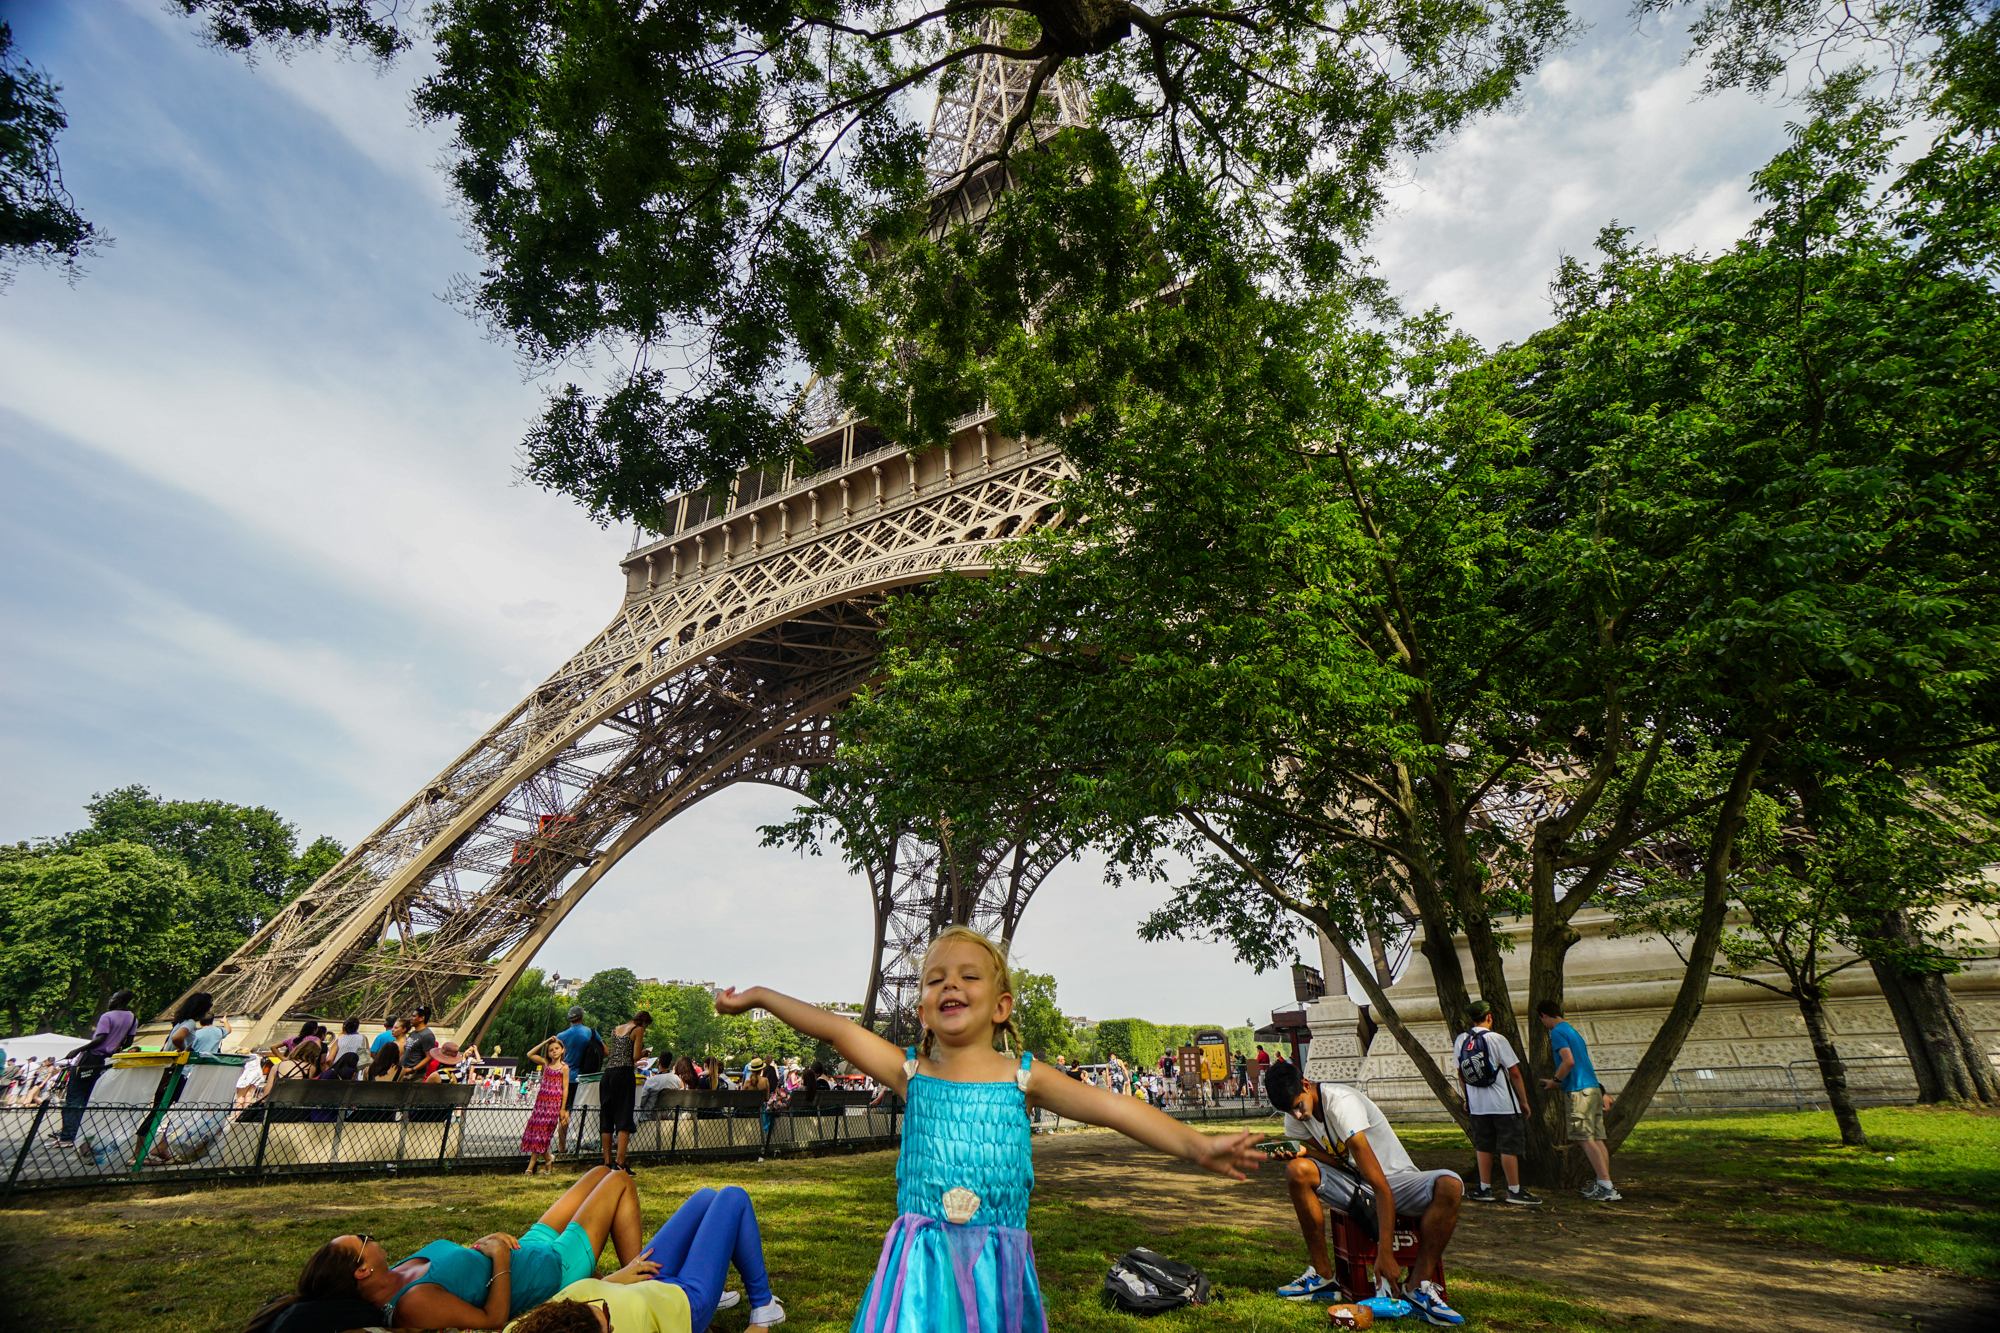 At the Eiffel Tower in Paris, France